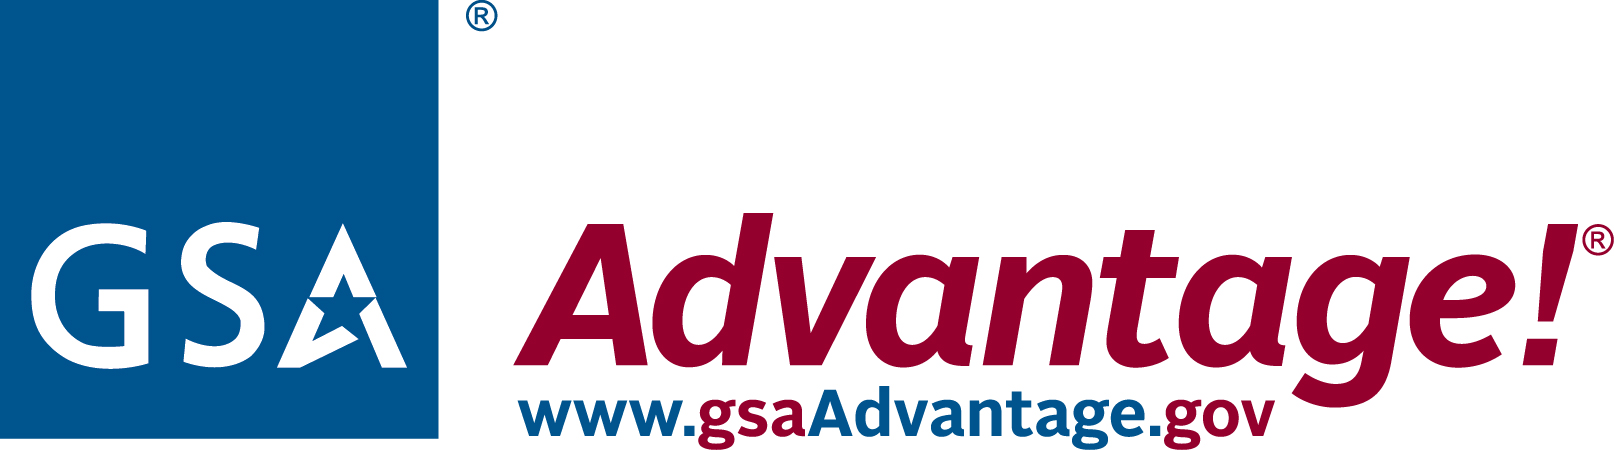 gsaadvantage-full-color-with-url-2015.jpg